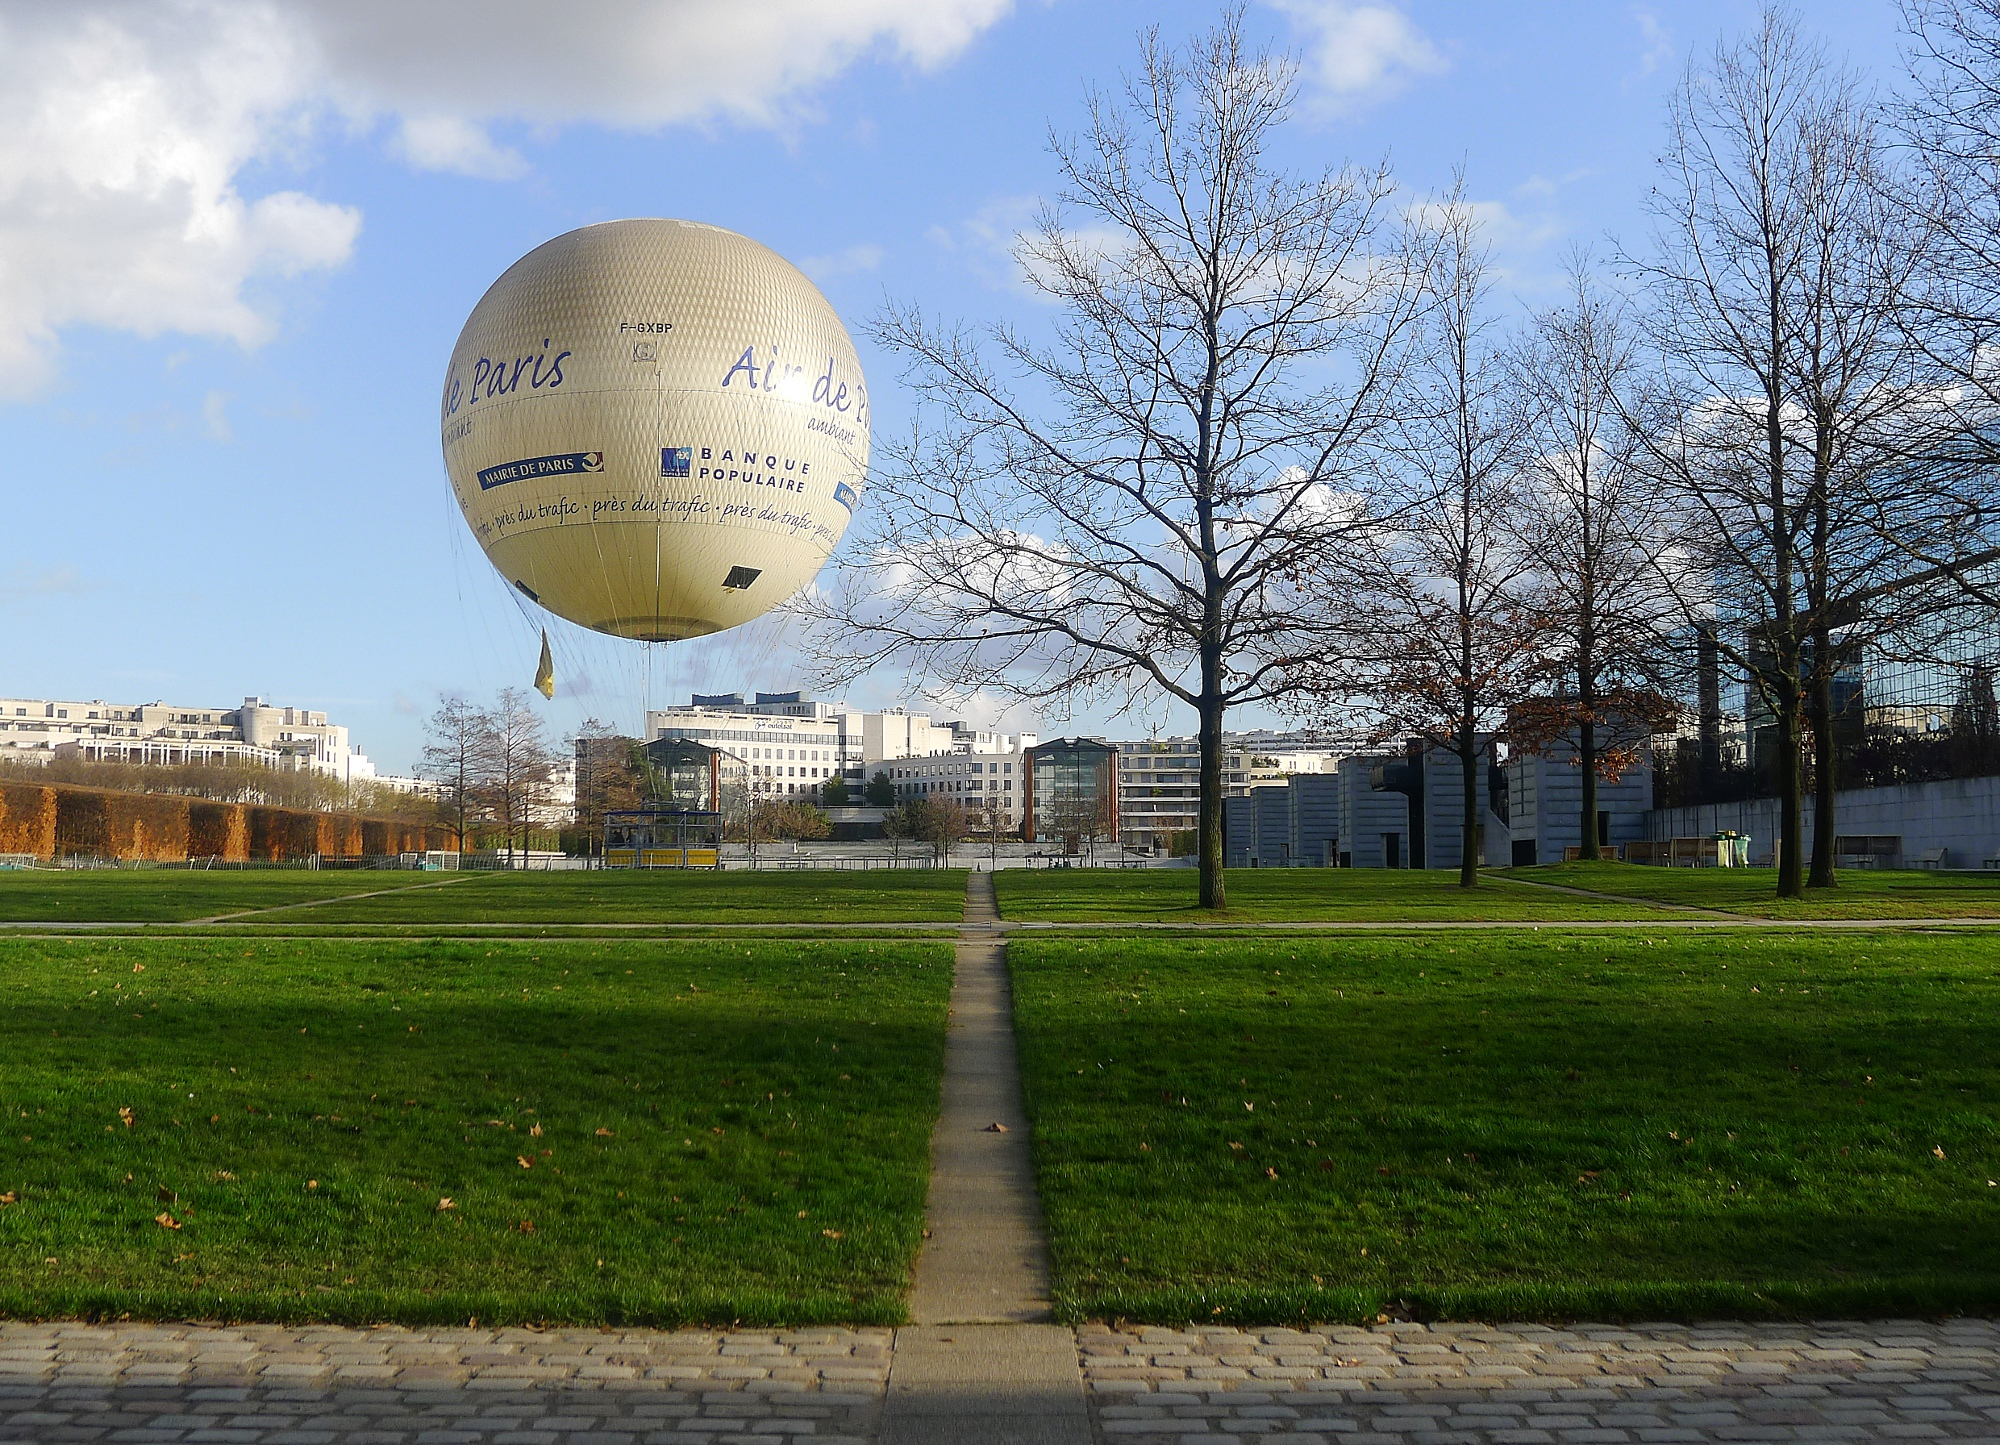 9015f0d7e6 Ballon captif — Wikipédia